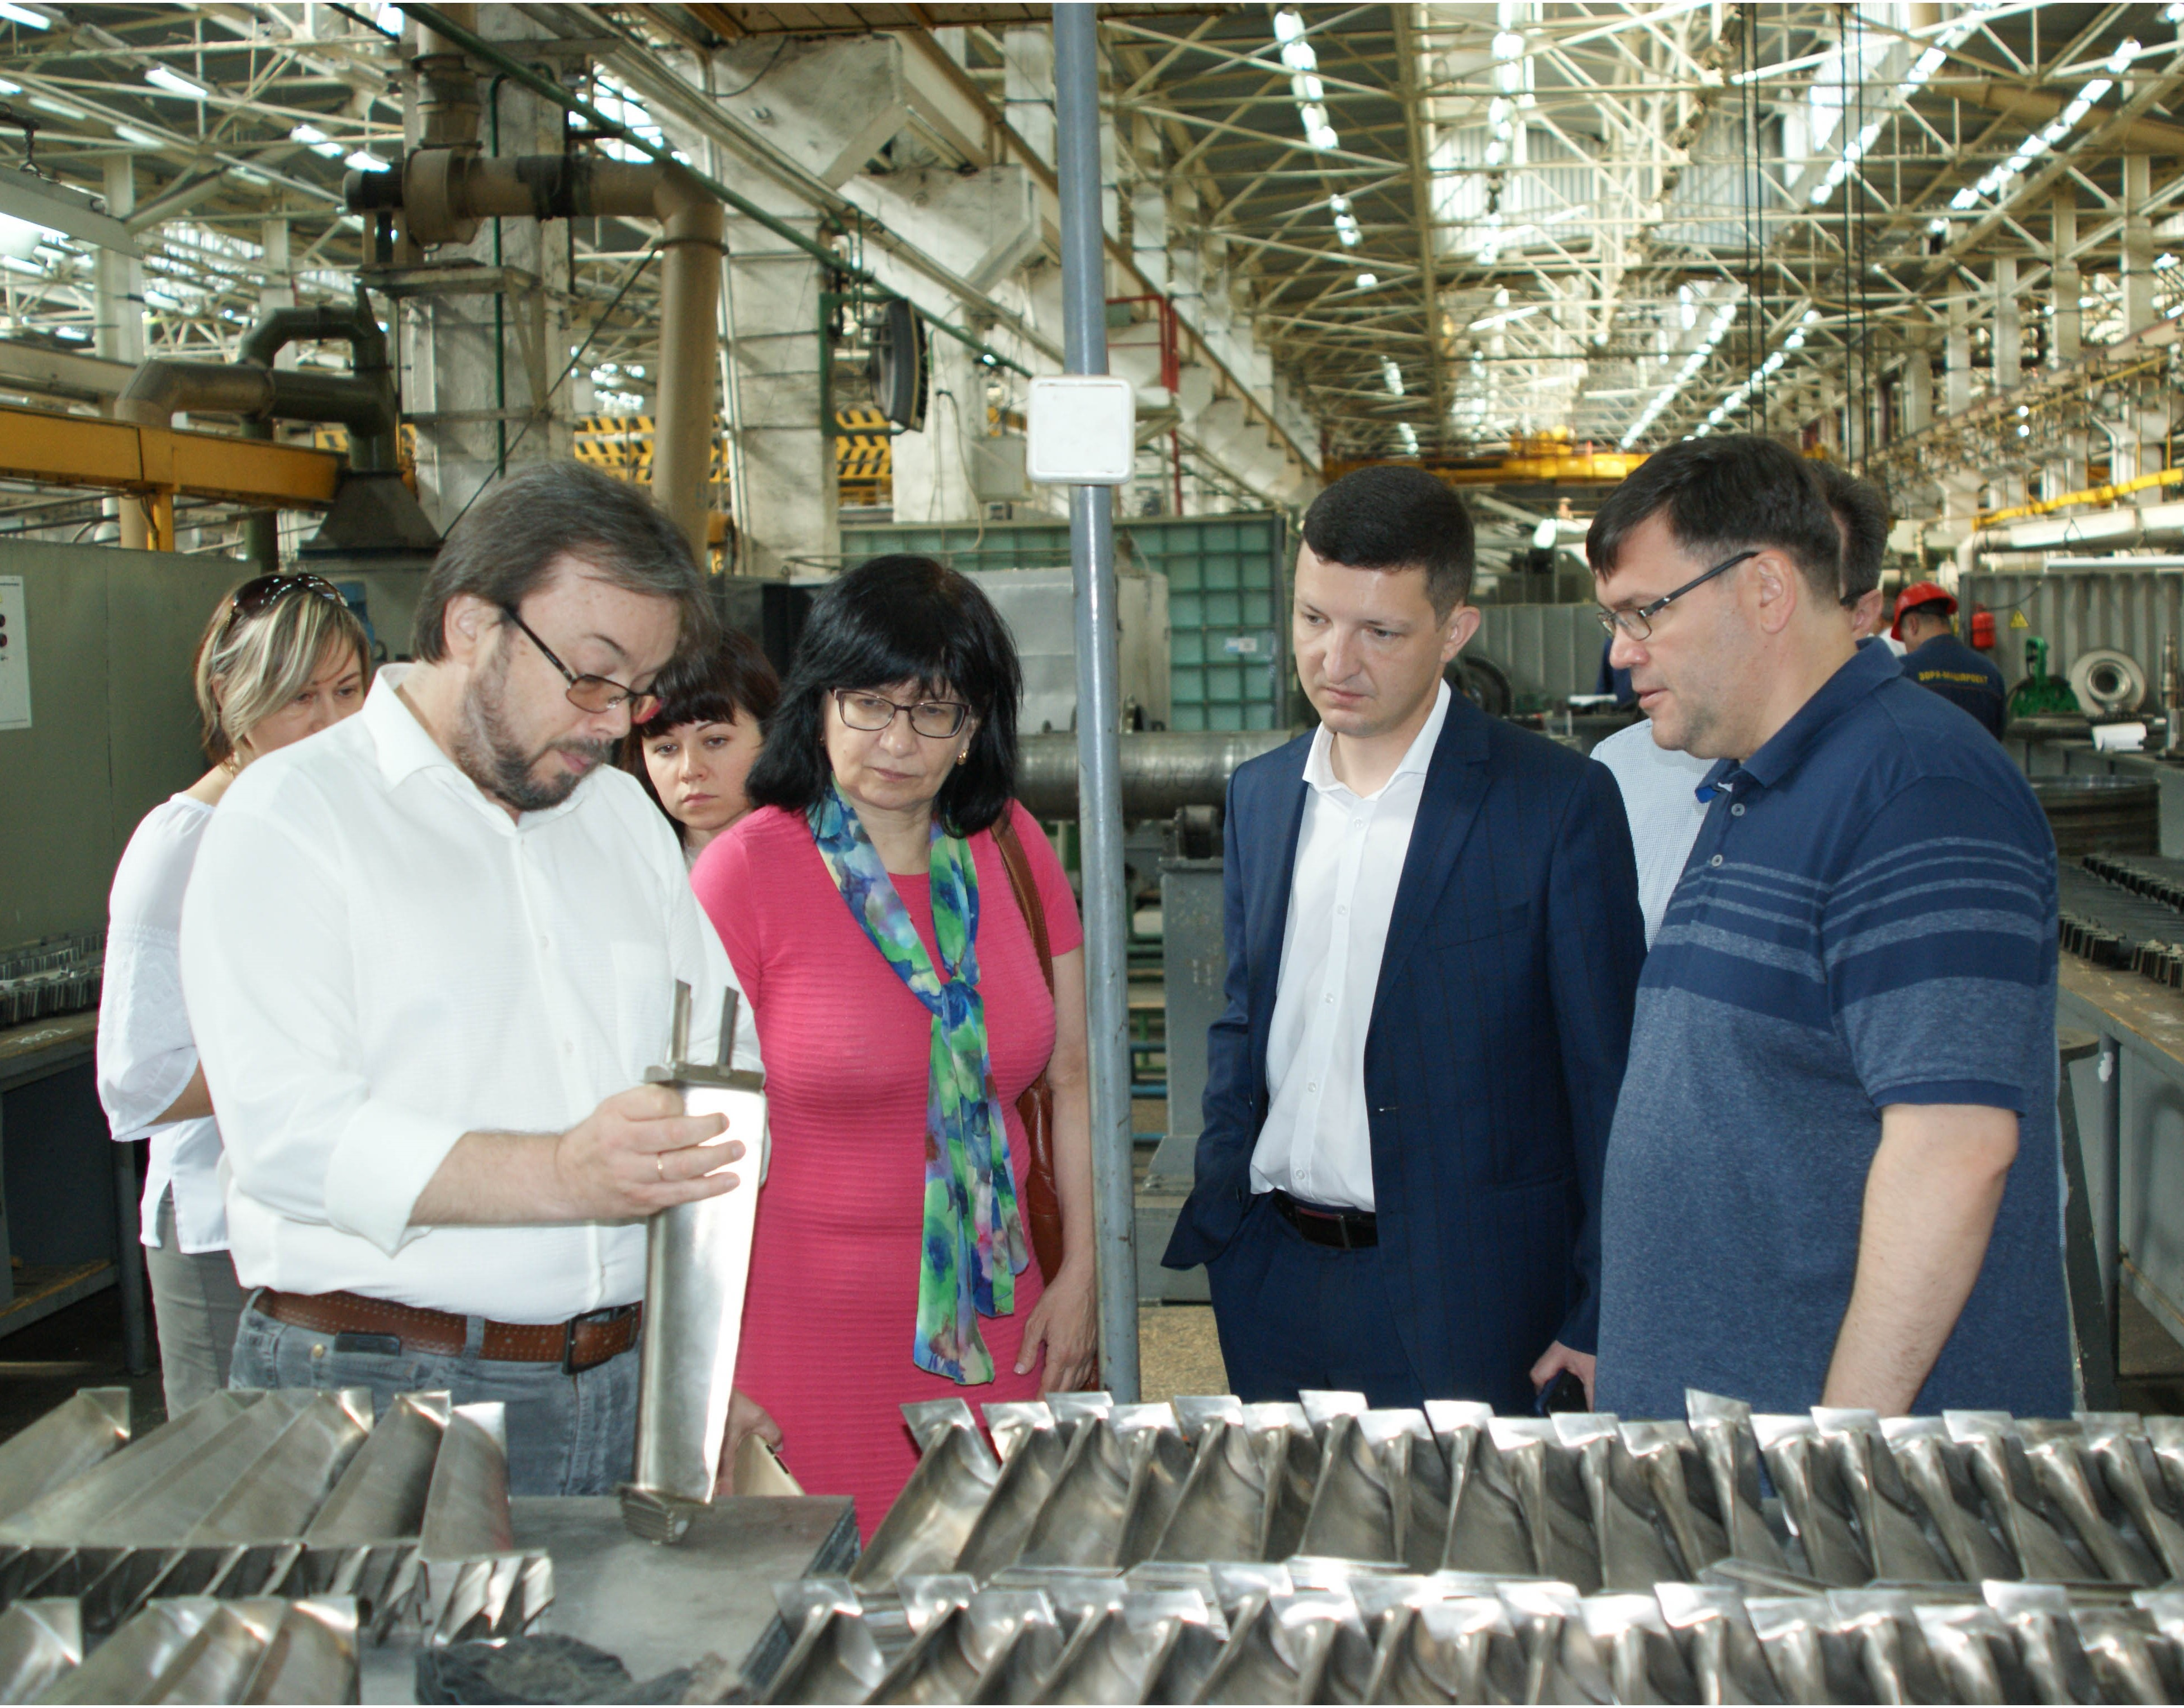 JSC UkrGasVydobuvannya visited State Enterprise 'Zorya-Mashproekt', under the program aimed at upgrading production facilitie